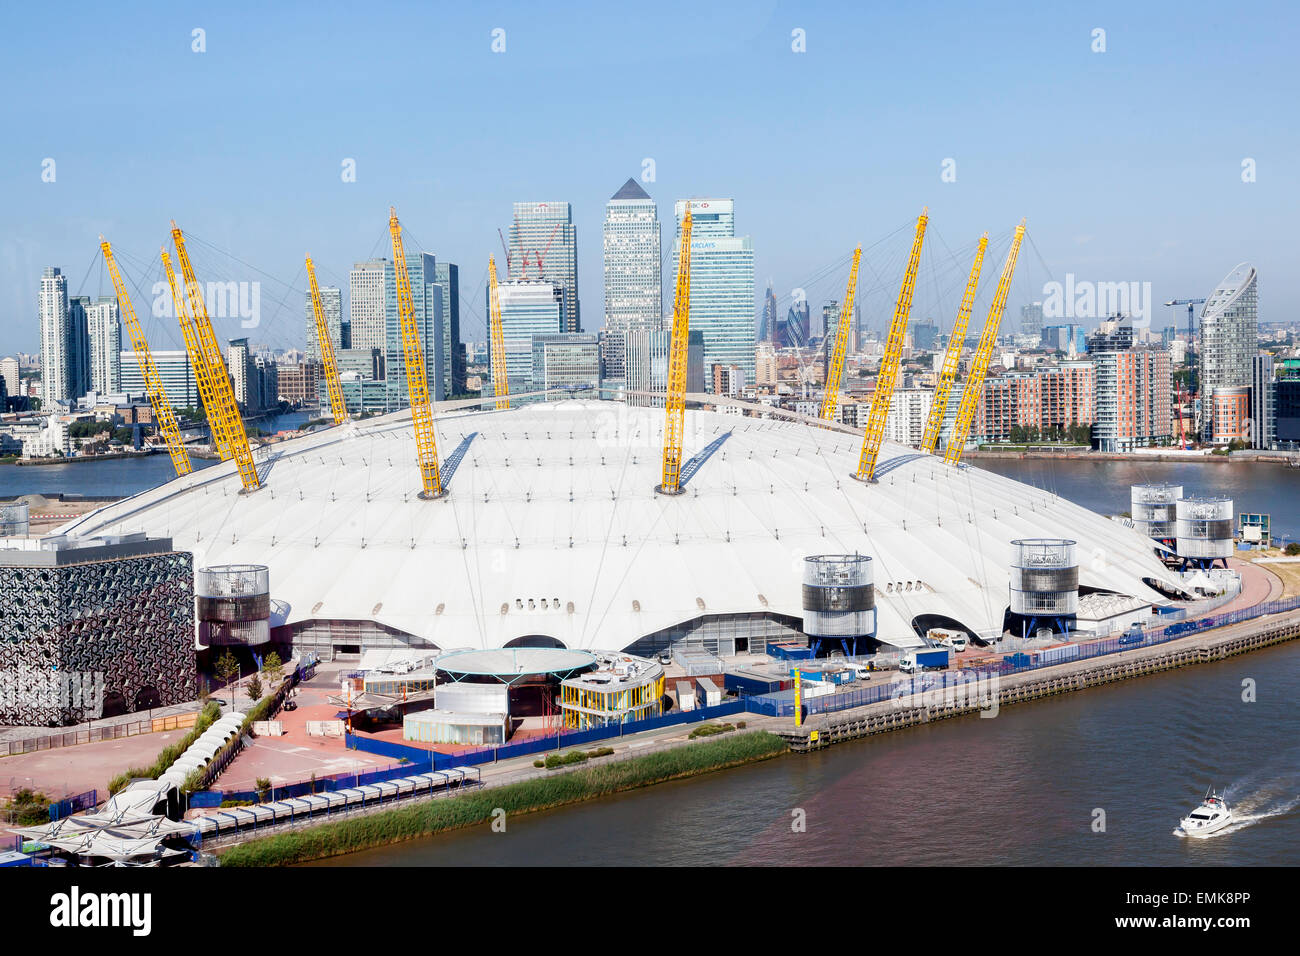 The Dome, Millennium Dome, The O2, with Canary Wharf financial district on the River Thames, London, England, United - Stock Image